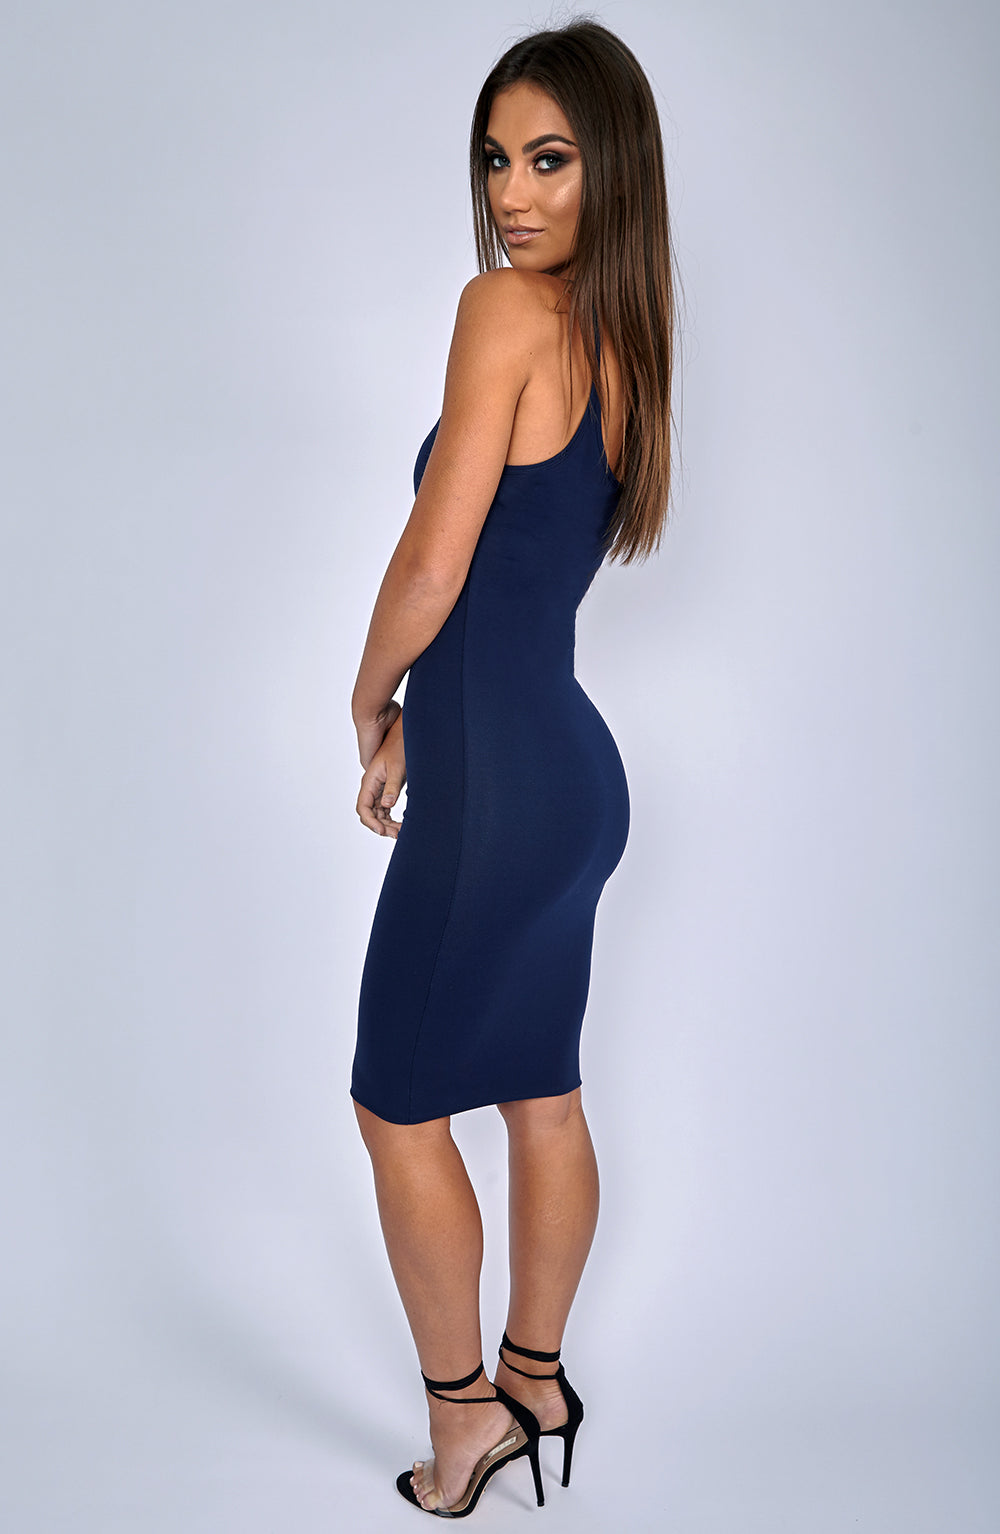 Zaphire Dress - Navy